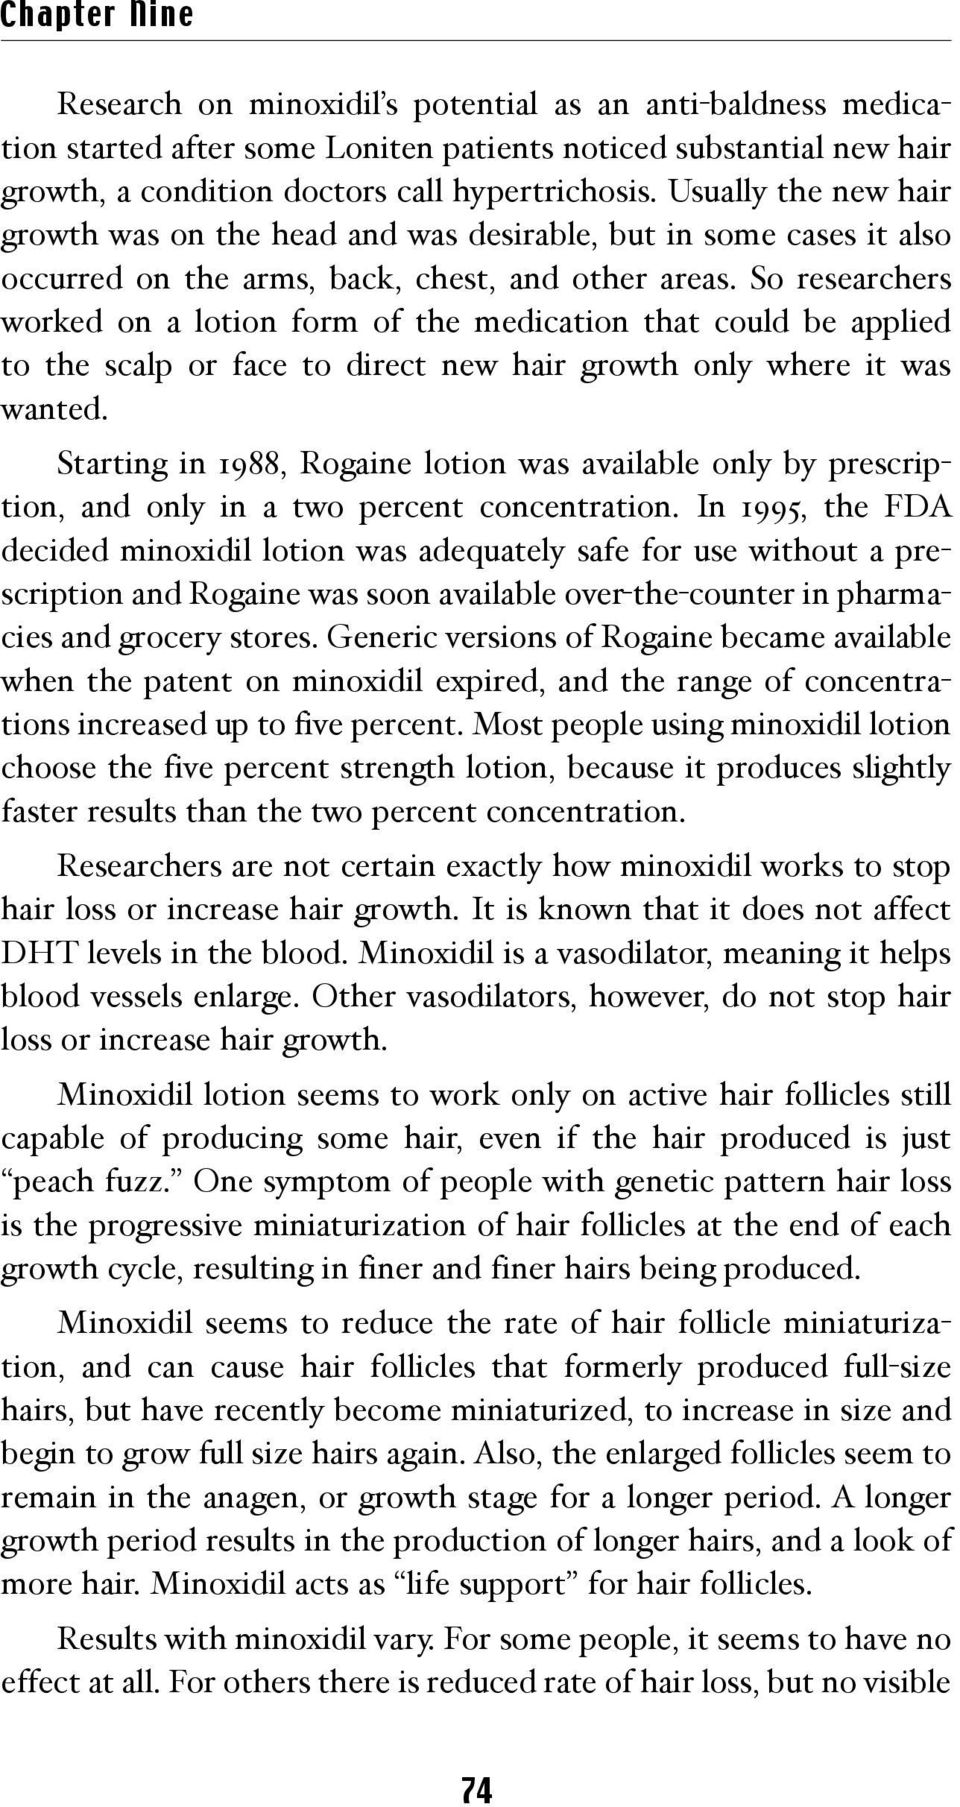 So researchers worked on a lotion form of the medication that could be applied to the scalp or face to direct new hair growth only where it was wanted.